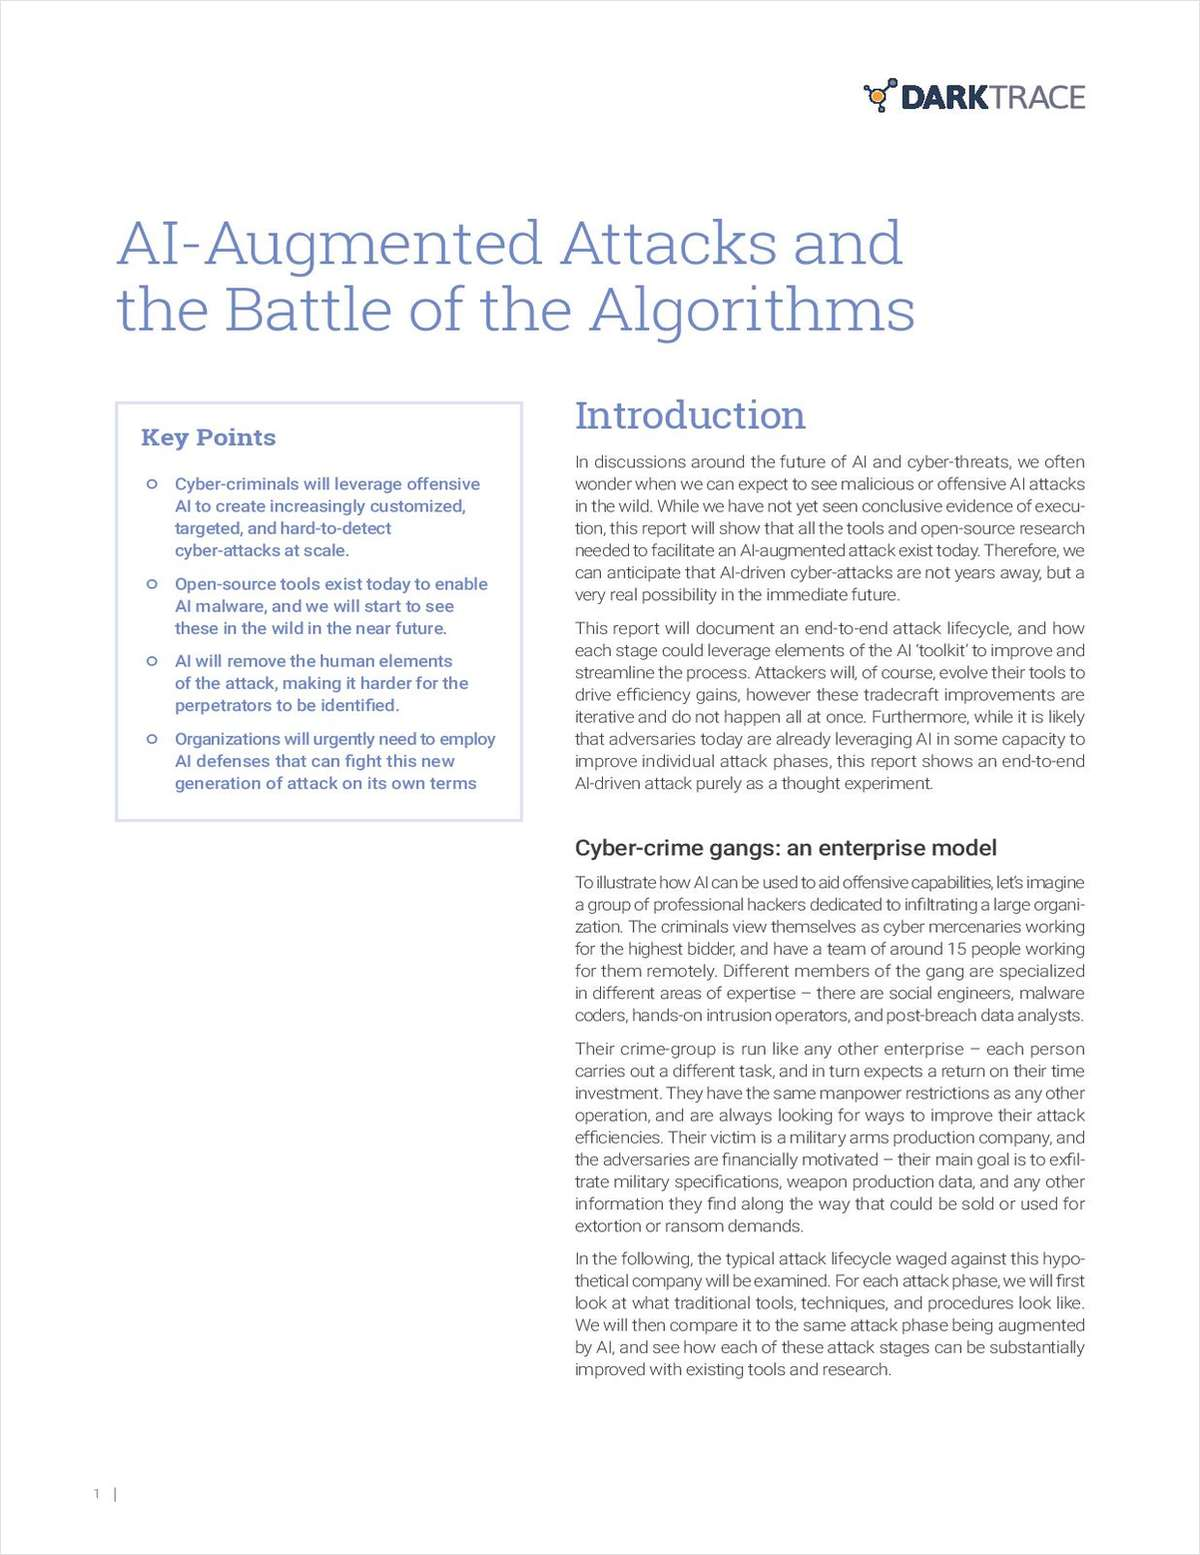 The Battle of the Algorithms and the AI-Augmented Attacks